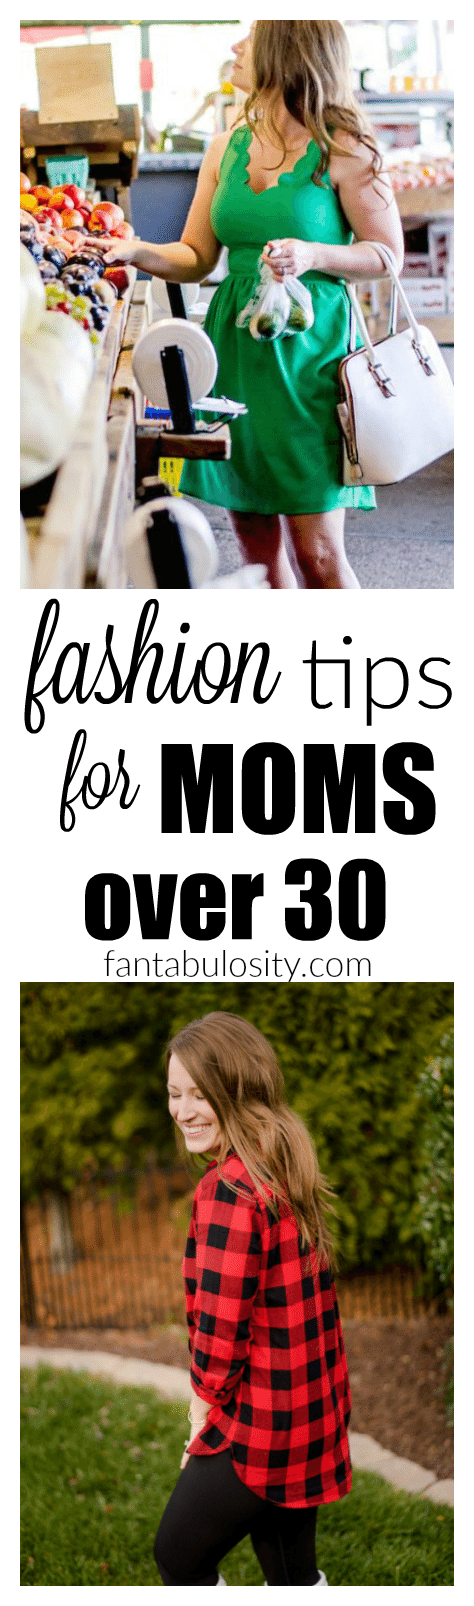 Fashion for moms tips ideas and the stores that she loves to shop at that are affordable and practical. fantabulosity.com